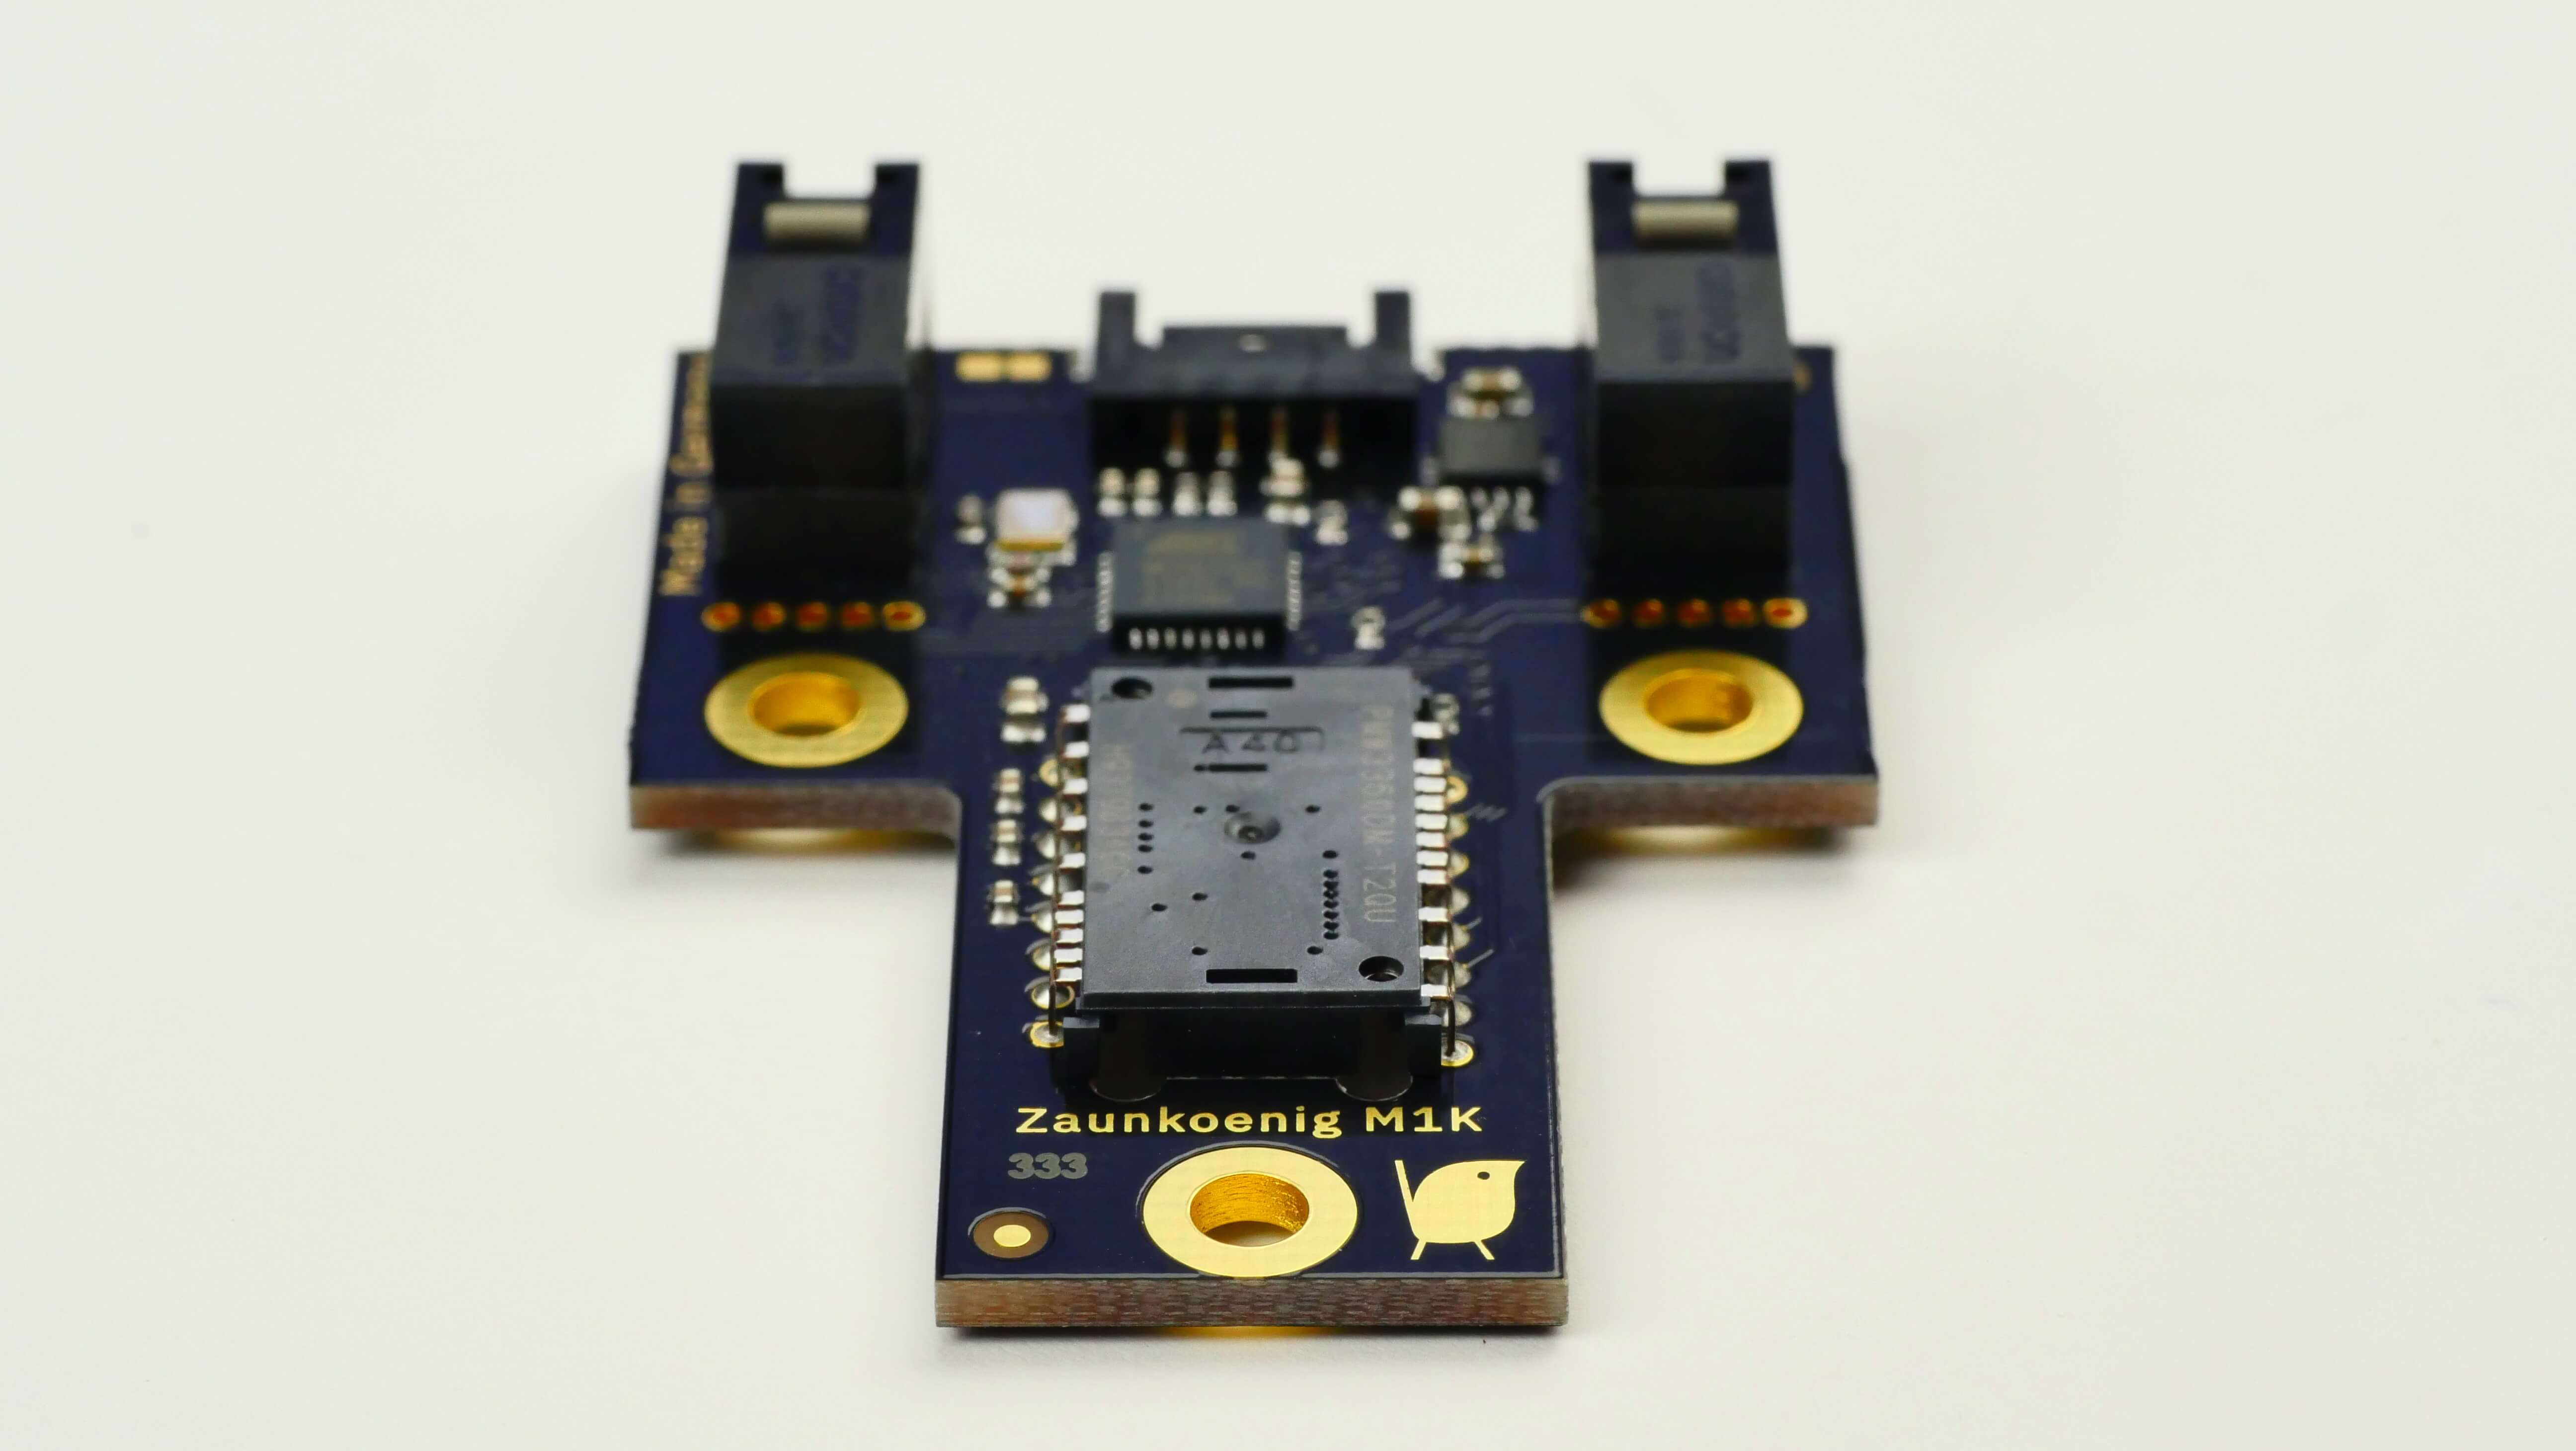 This picture shows the Zaunkoenig M1K PCB number 333.